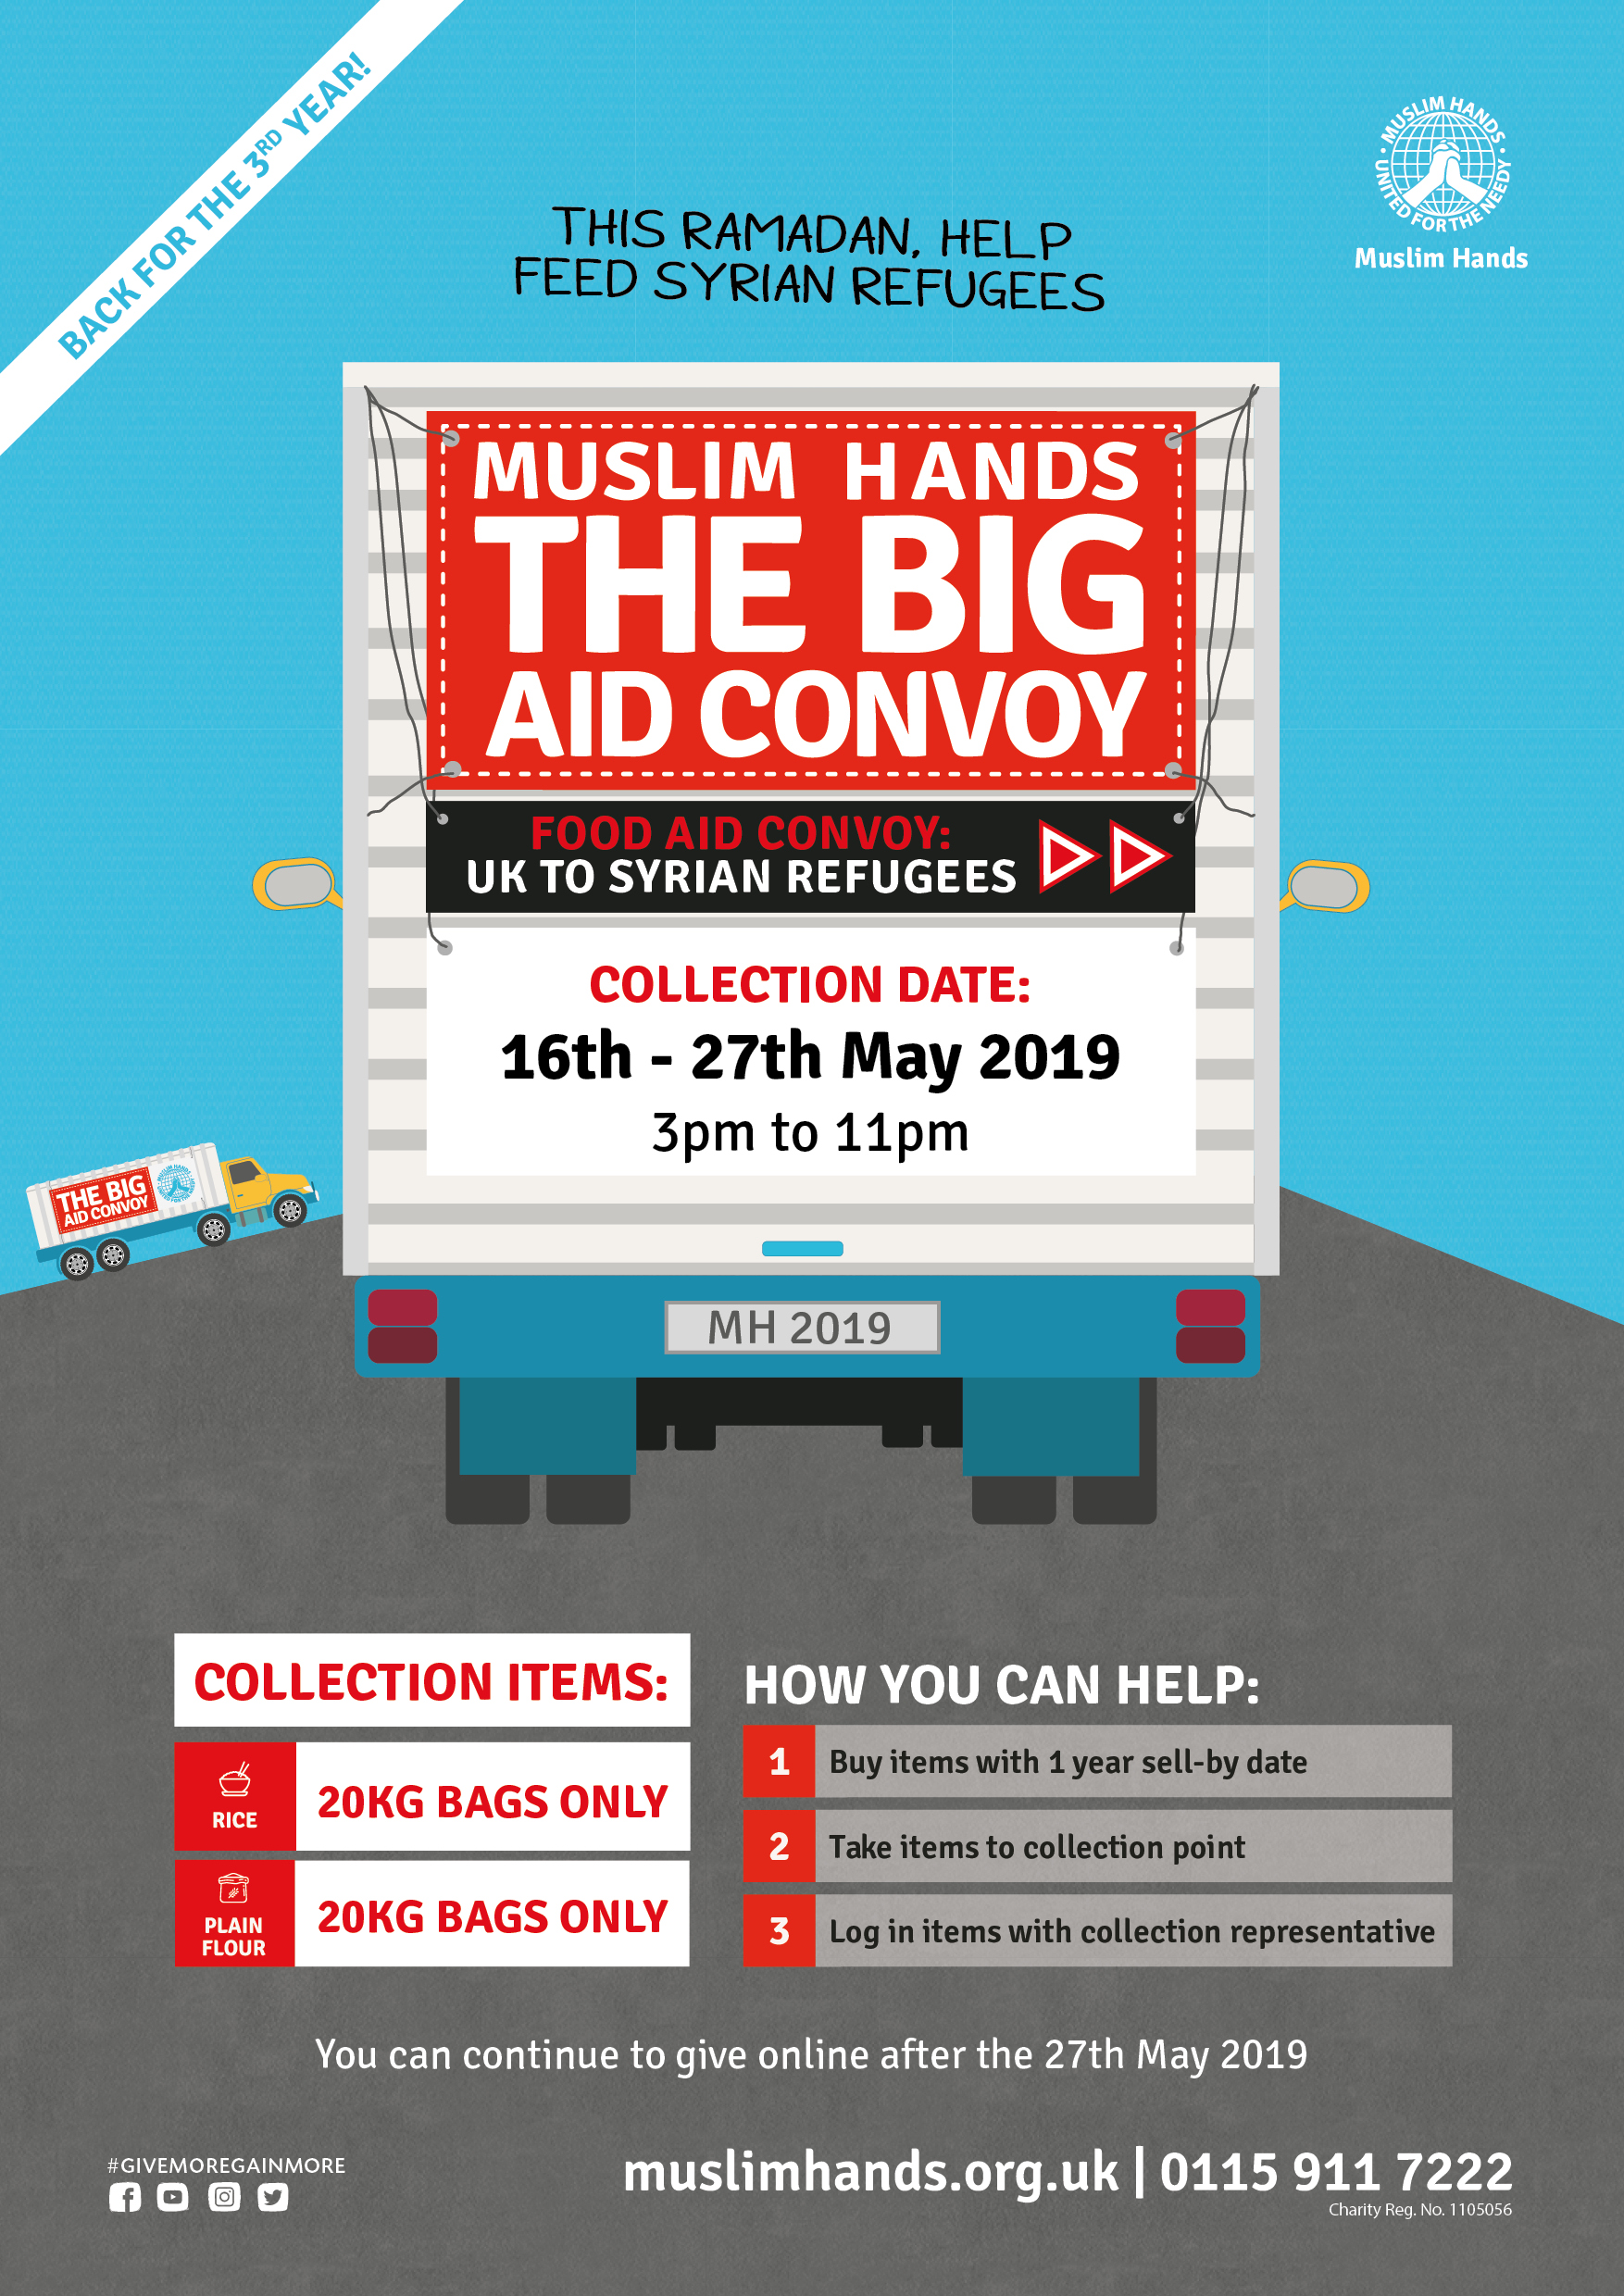 The Big Aid Convoy 2019: UK to Syrian Refugees | Muslim Hands UK